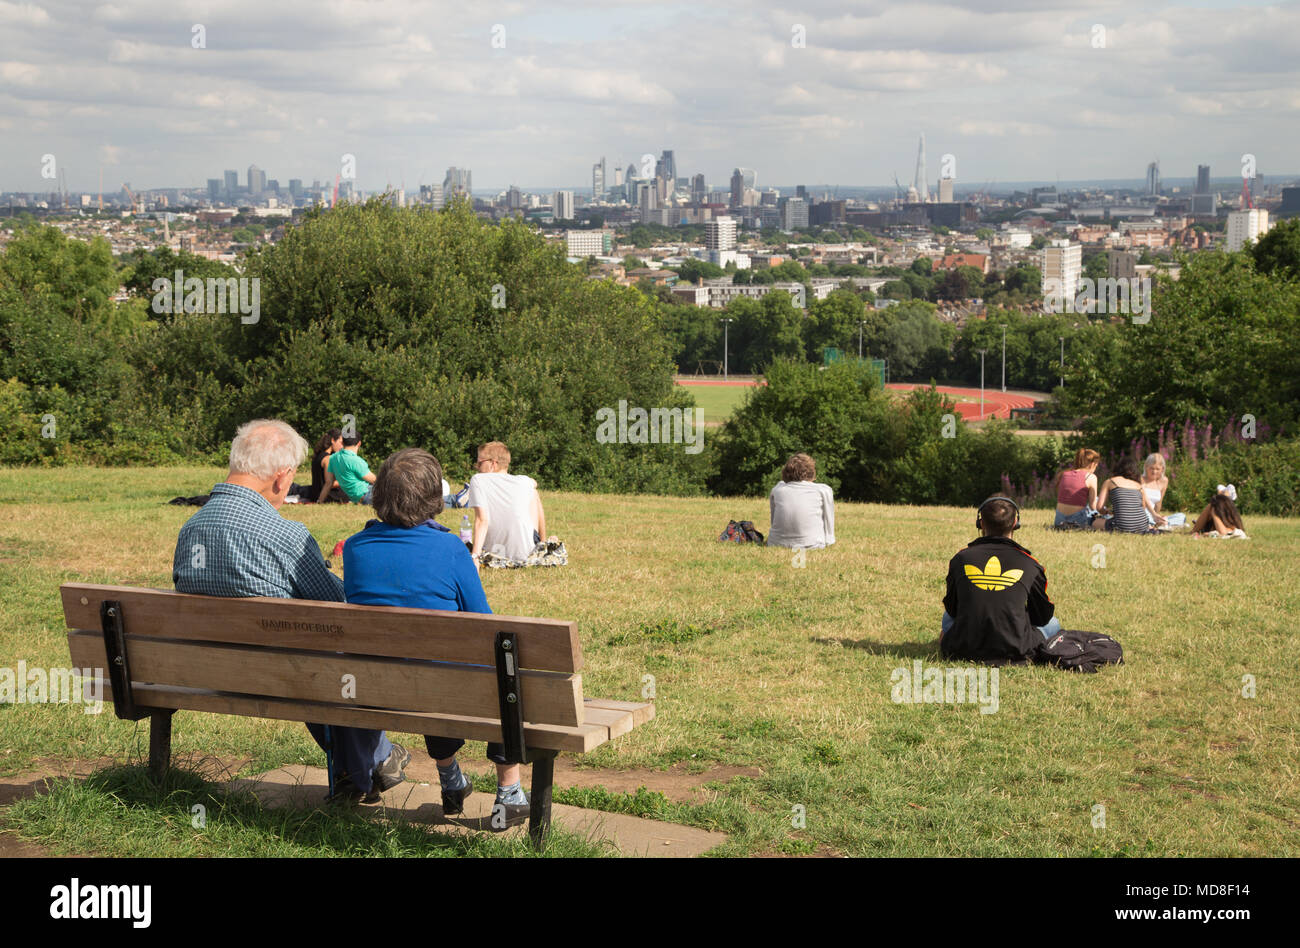 People relax and enjoy the panoramic view of the London skyline on a summer afternoon on Parliament Hill on Hampstead Heath in north London - Stock Image